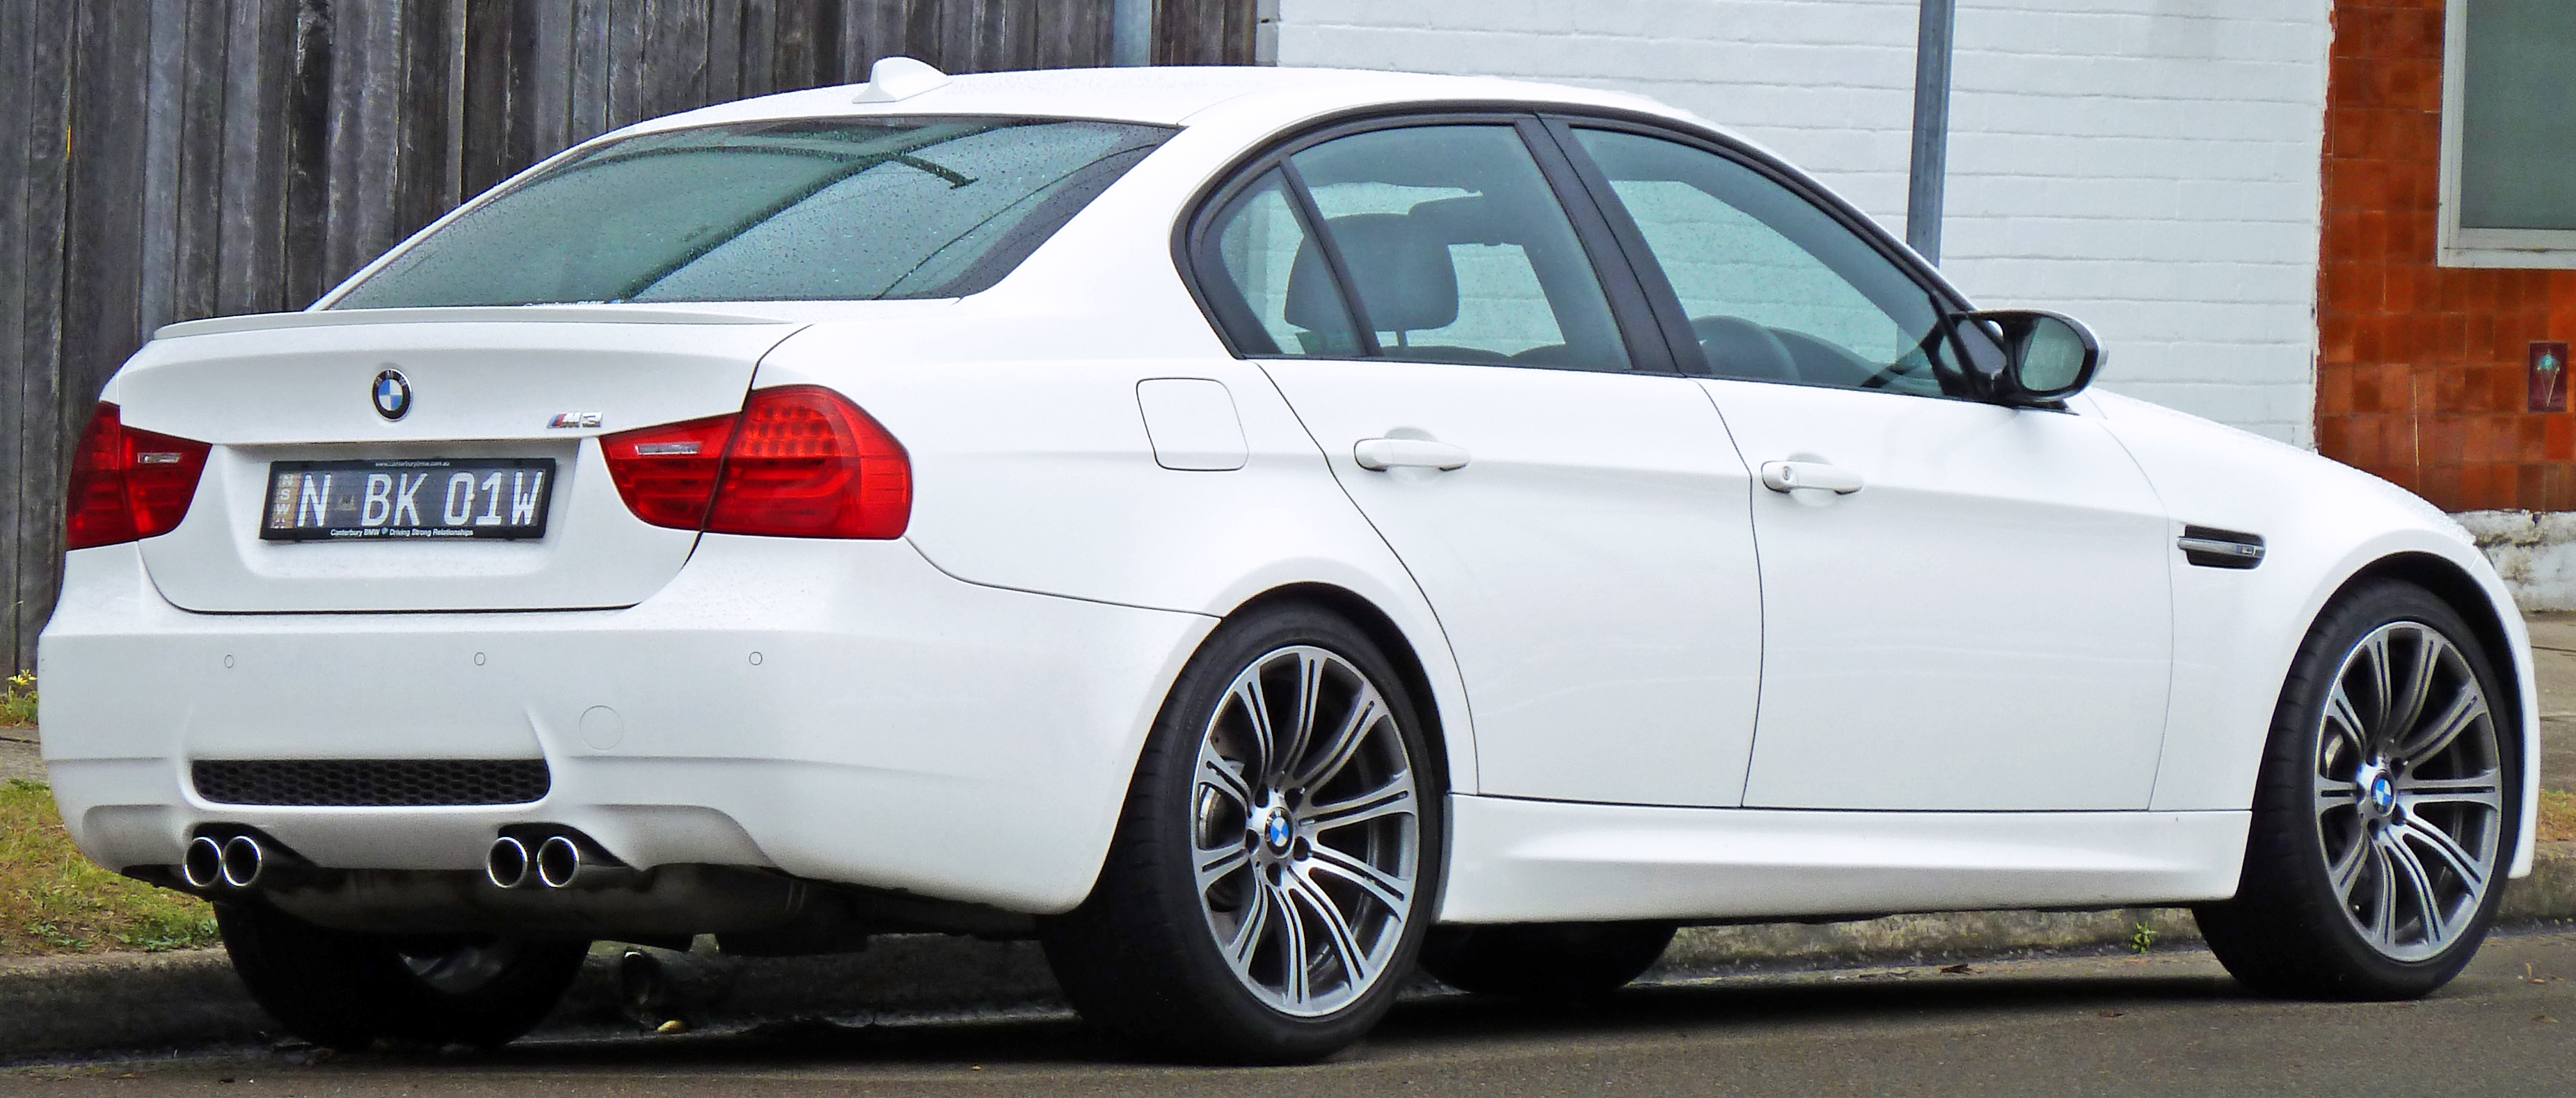 File:2008-2010 BMW M3 (E90) sedan 05.jpg - Wikimedia Commons